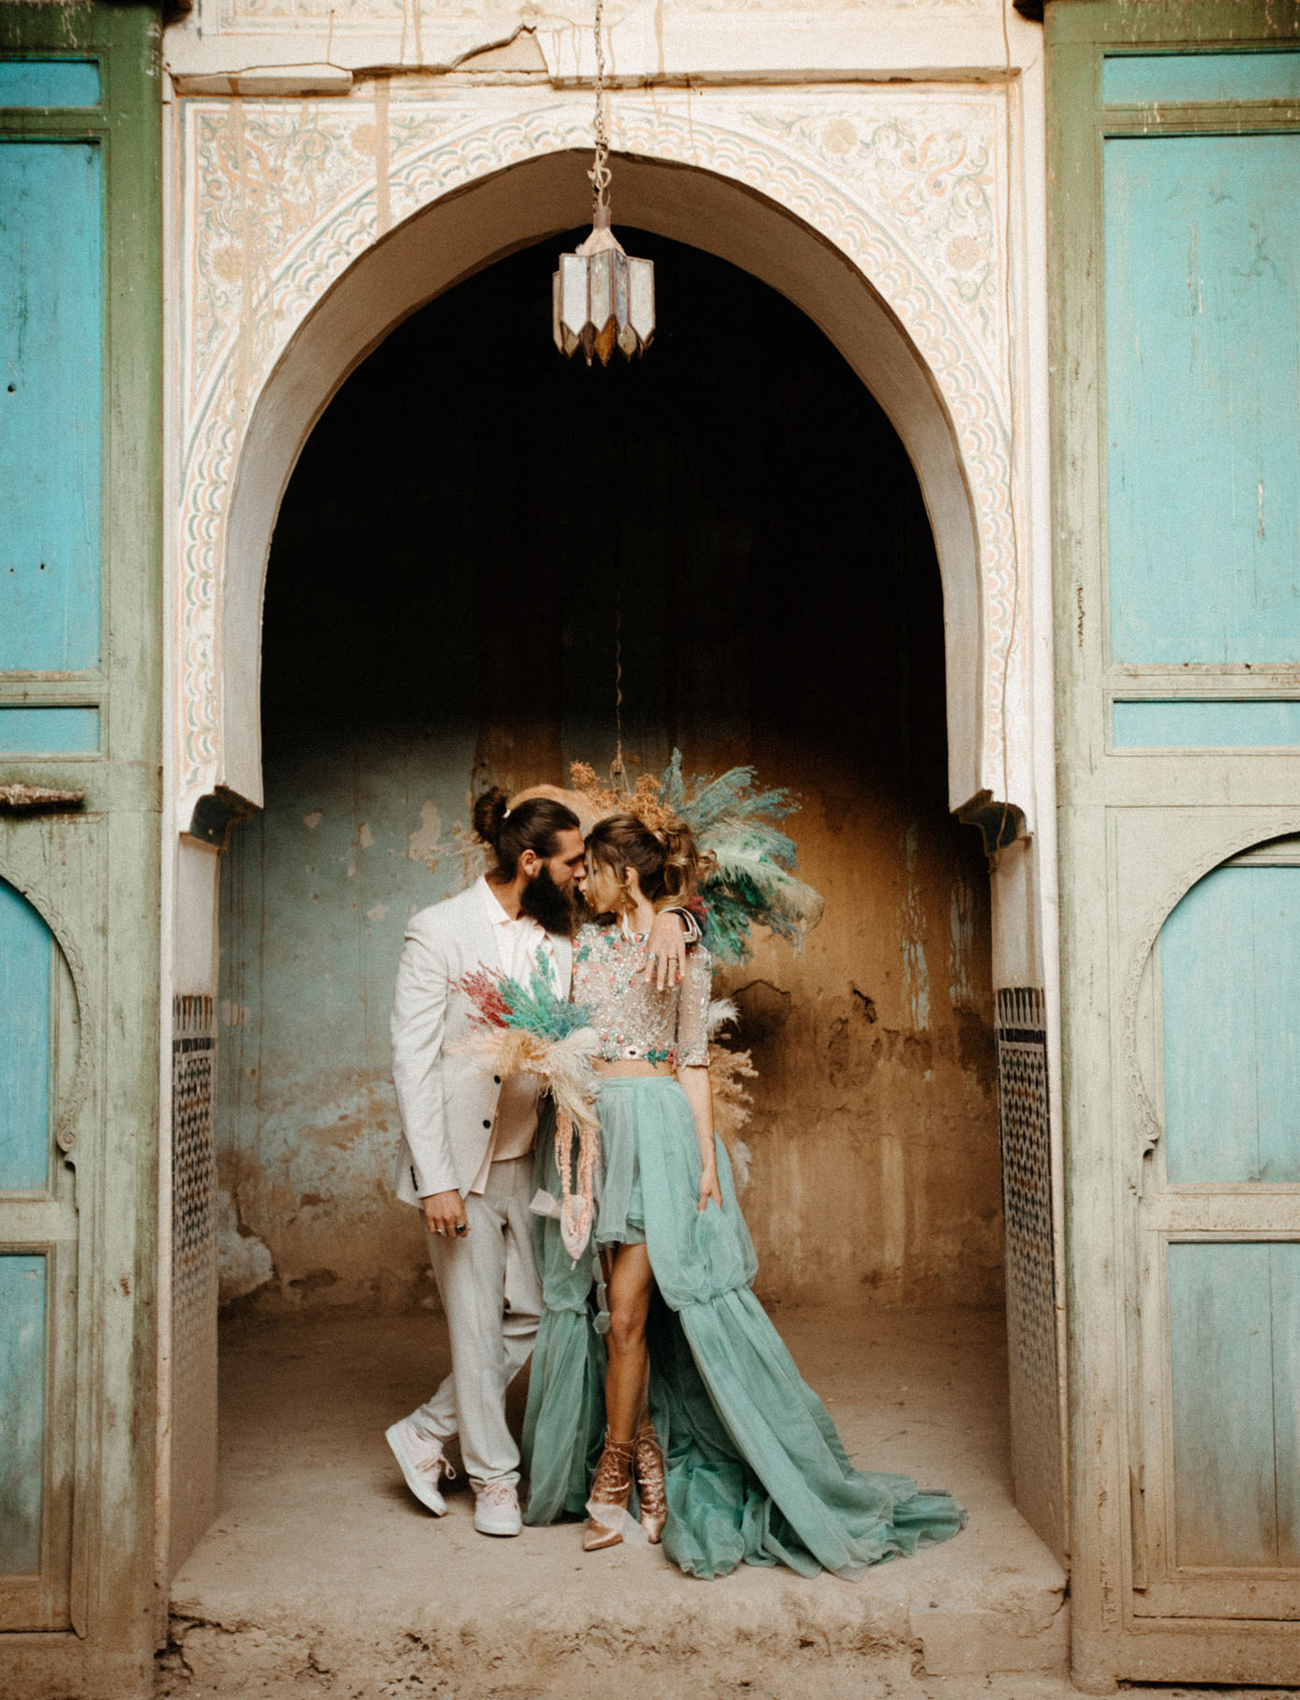 Abandoned Kasbah Elopement in Morocco